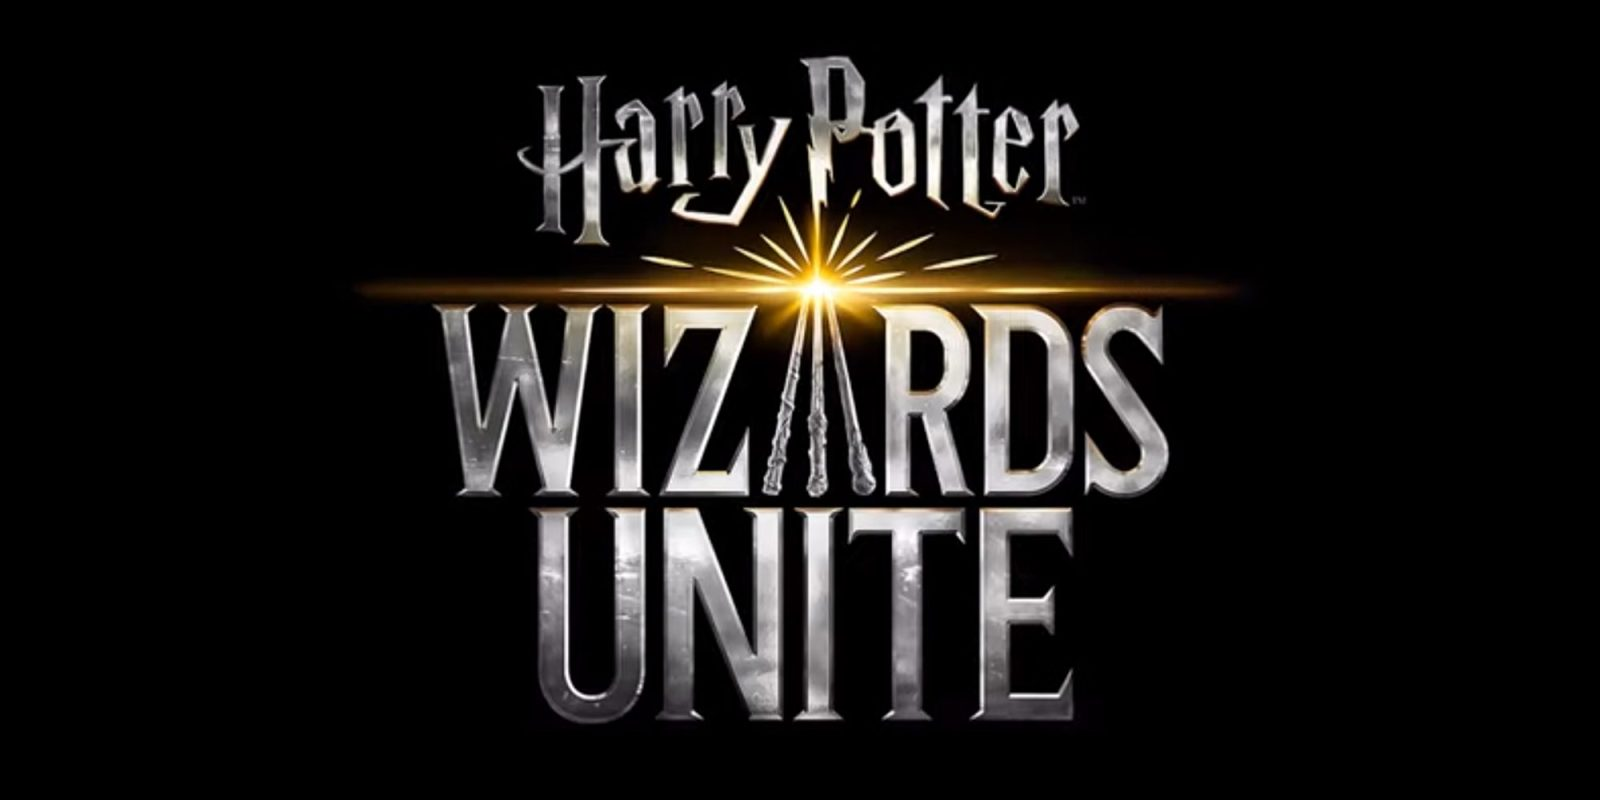 Niantic's new 'Harry Potter: Wizards Unite' game not yet gaining as much steam as Pokémon GO